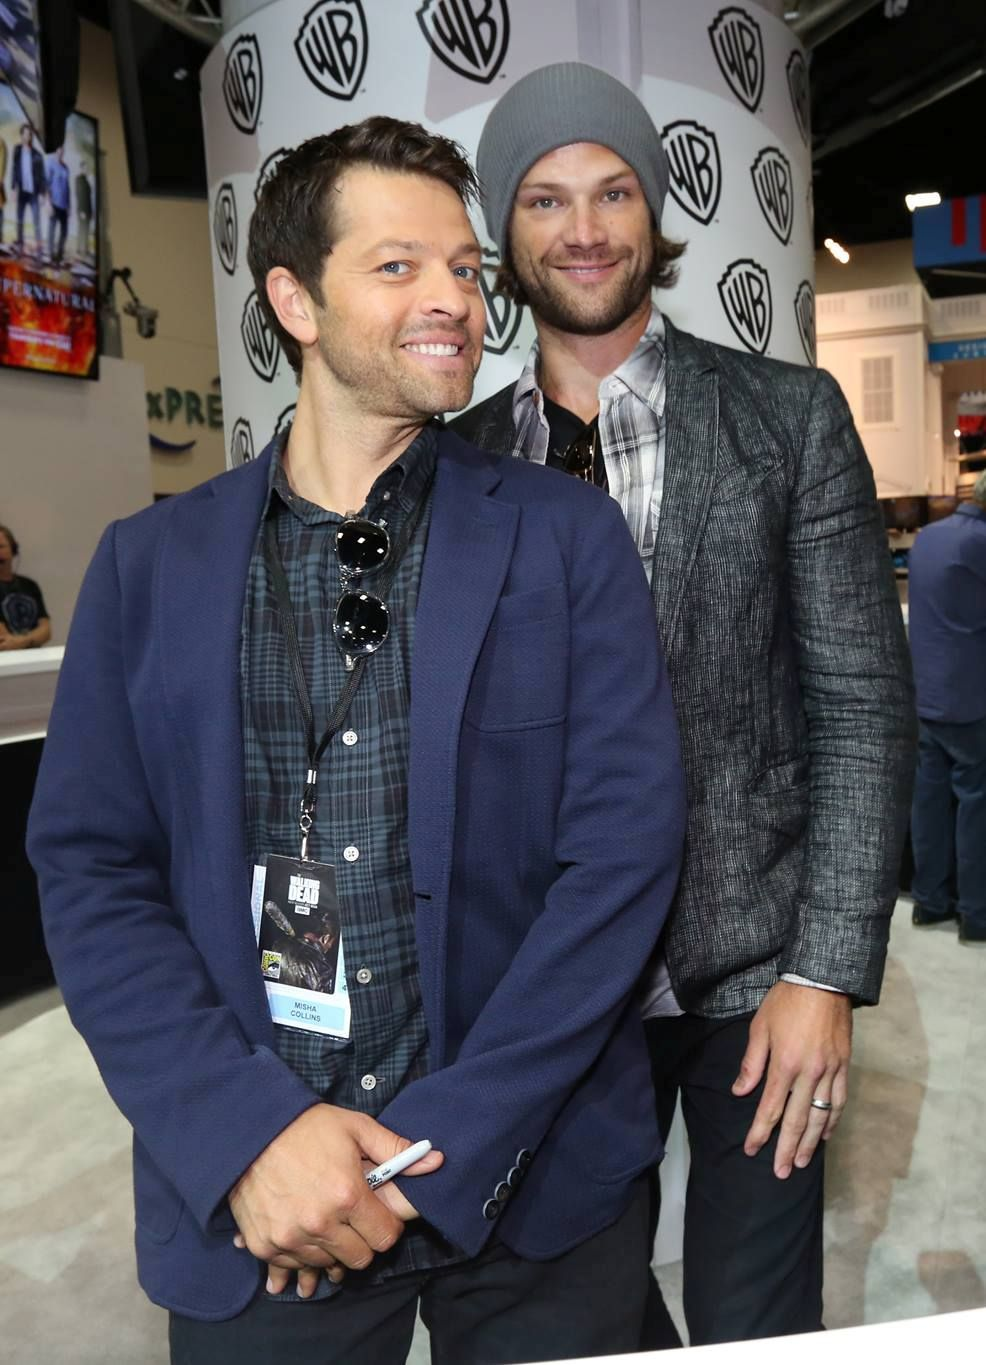 """Supernatural on Twitter: """"#Supernatural's @mishacollins and @jarpad at Comic-Con 2016. https://t.co/67vD4311Wr"""""""